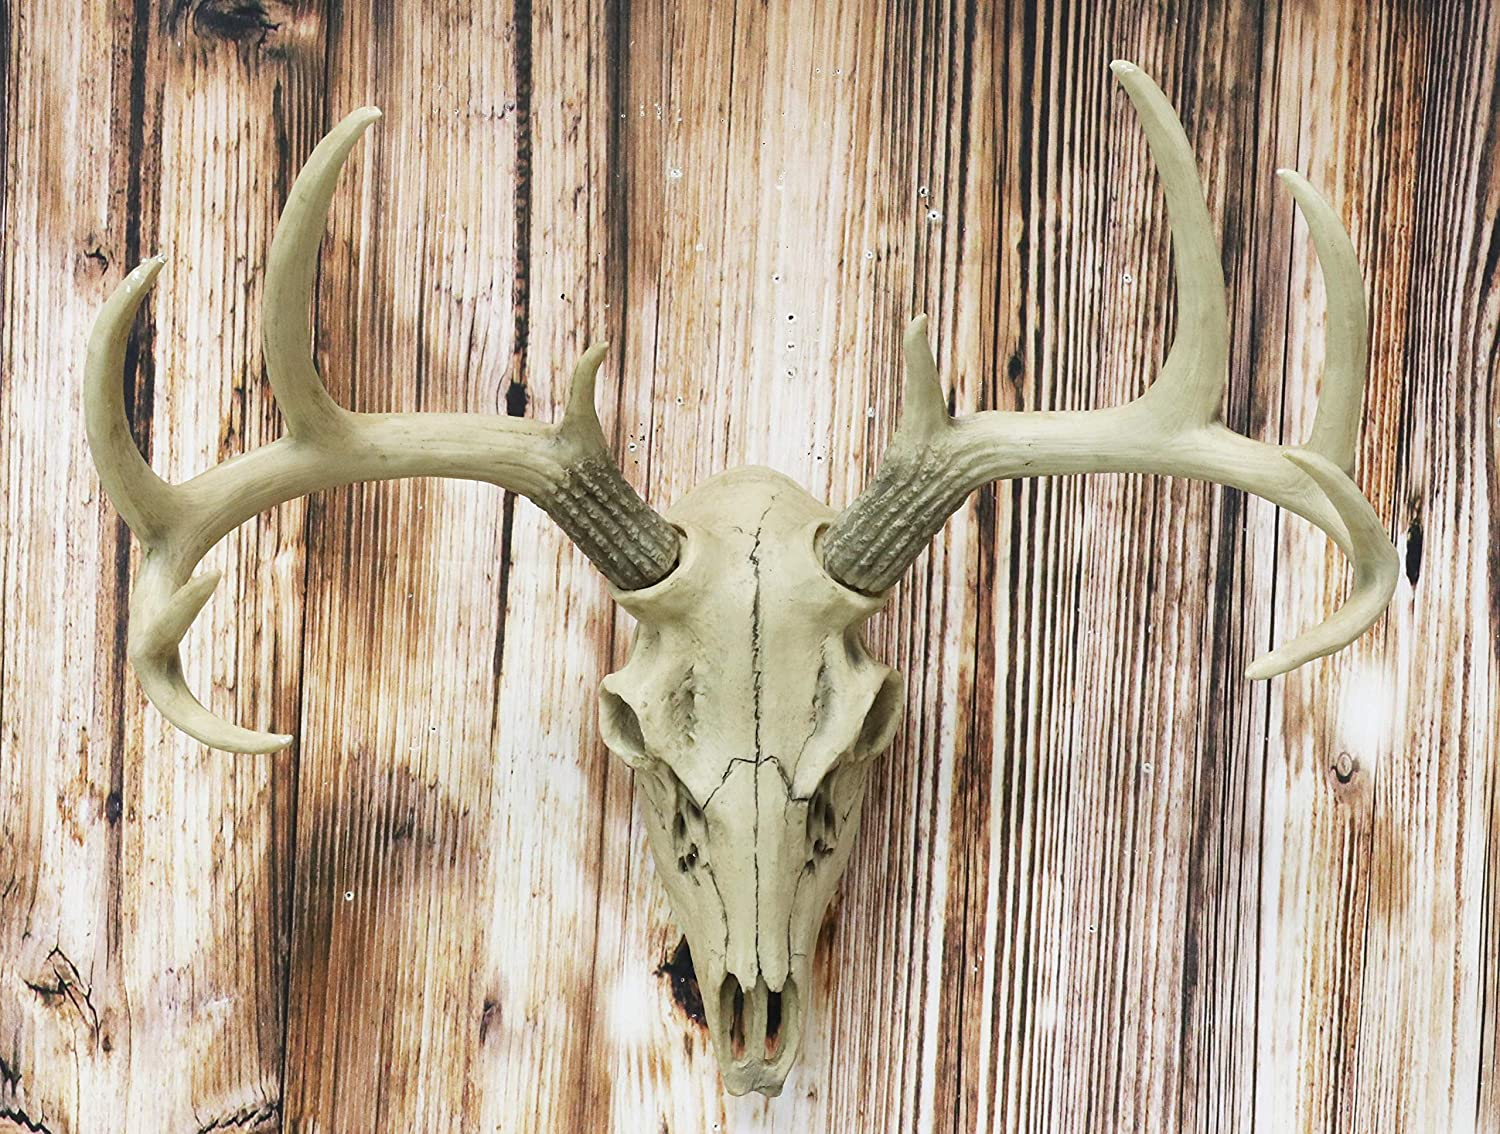 """Ebros 18.5"""" L 10 Point Buck Head Wall Mount Resin Stag Deer Skull Antler Rack Bust Hunting Cabin or Lodge Decor Skull Antlers Home Accent"""